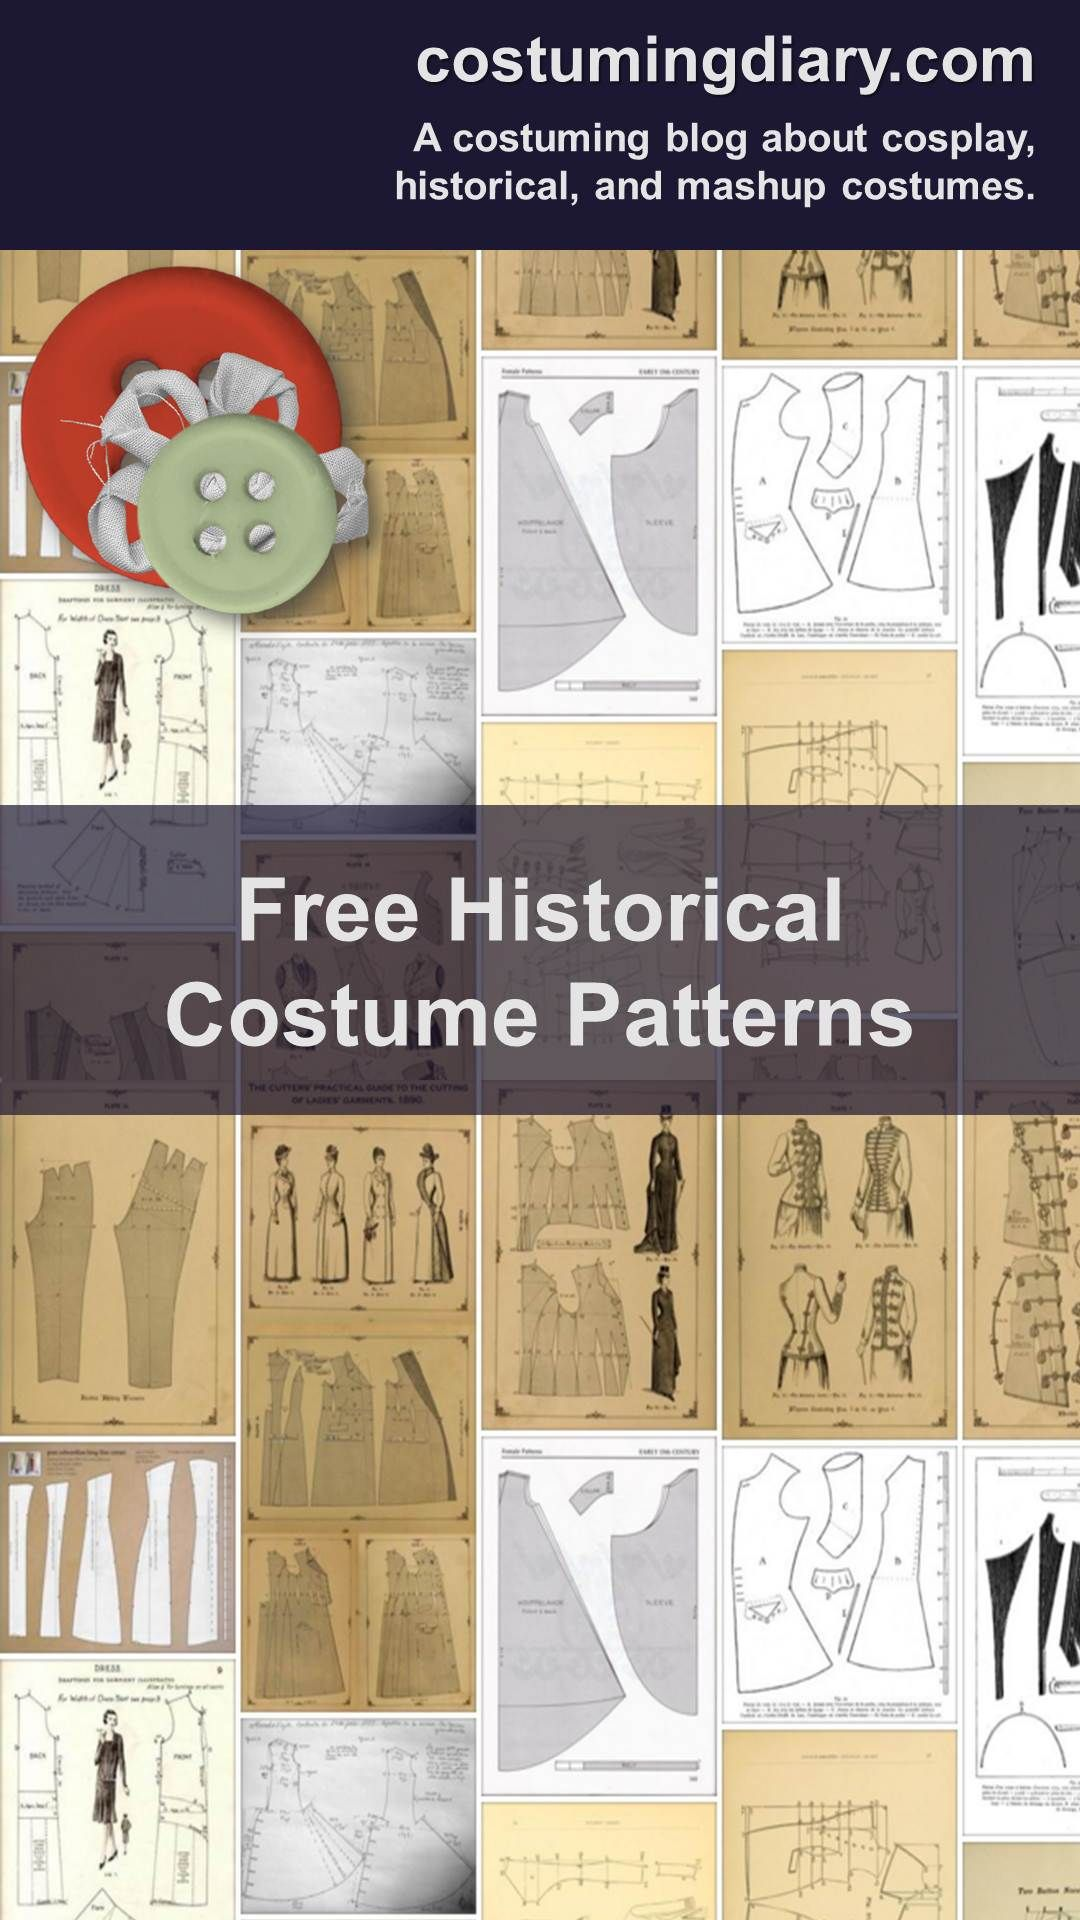 com - a costuming blog} | Costume patterns, Historical costume and ...